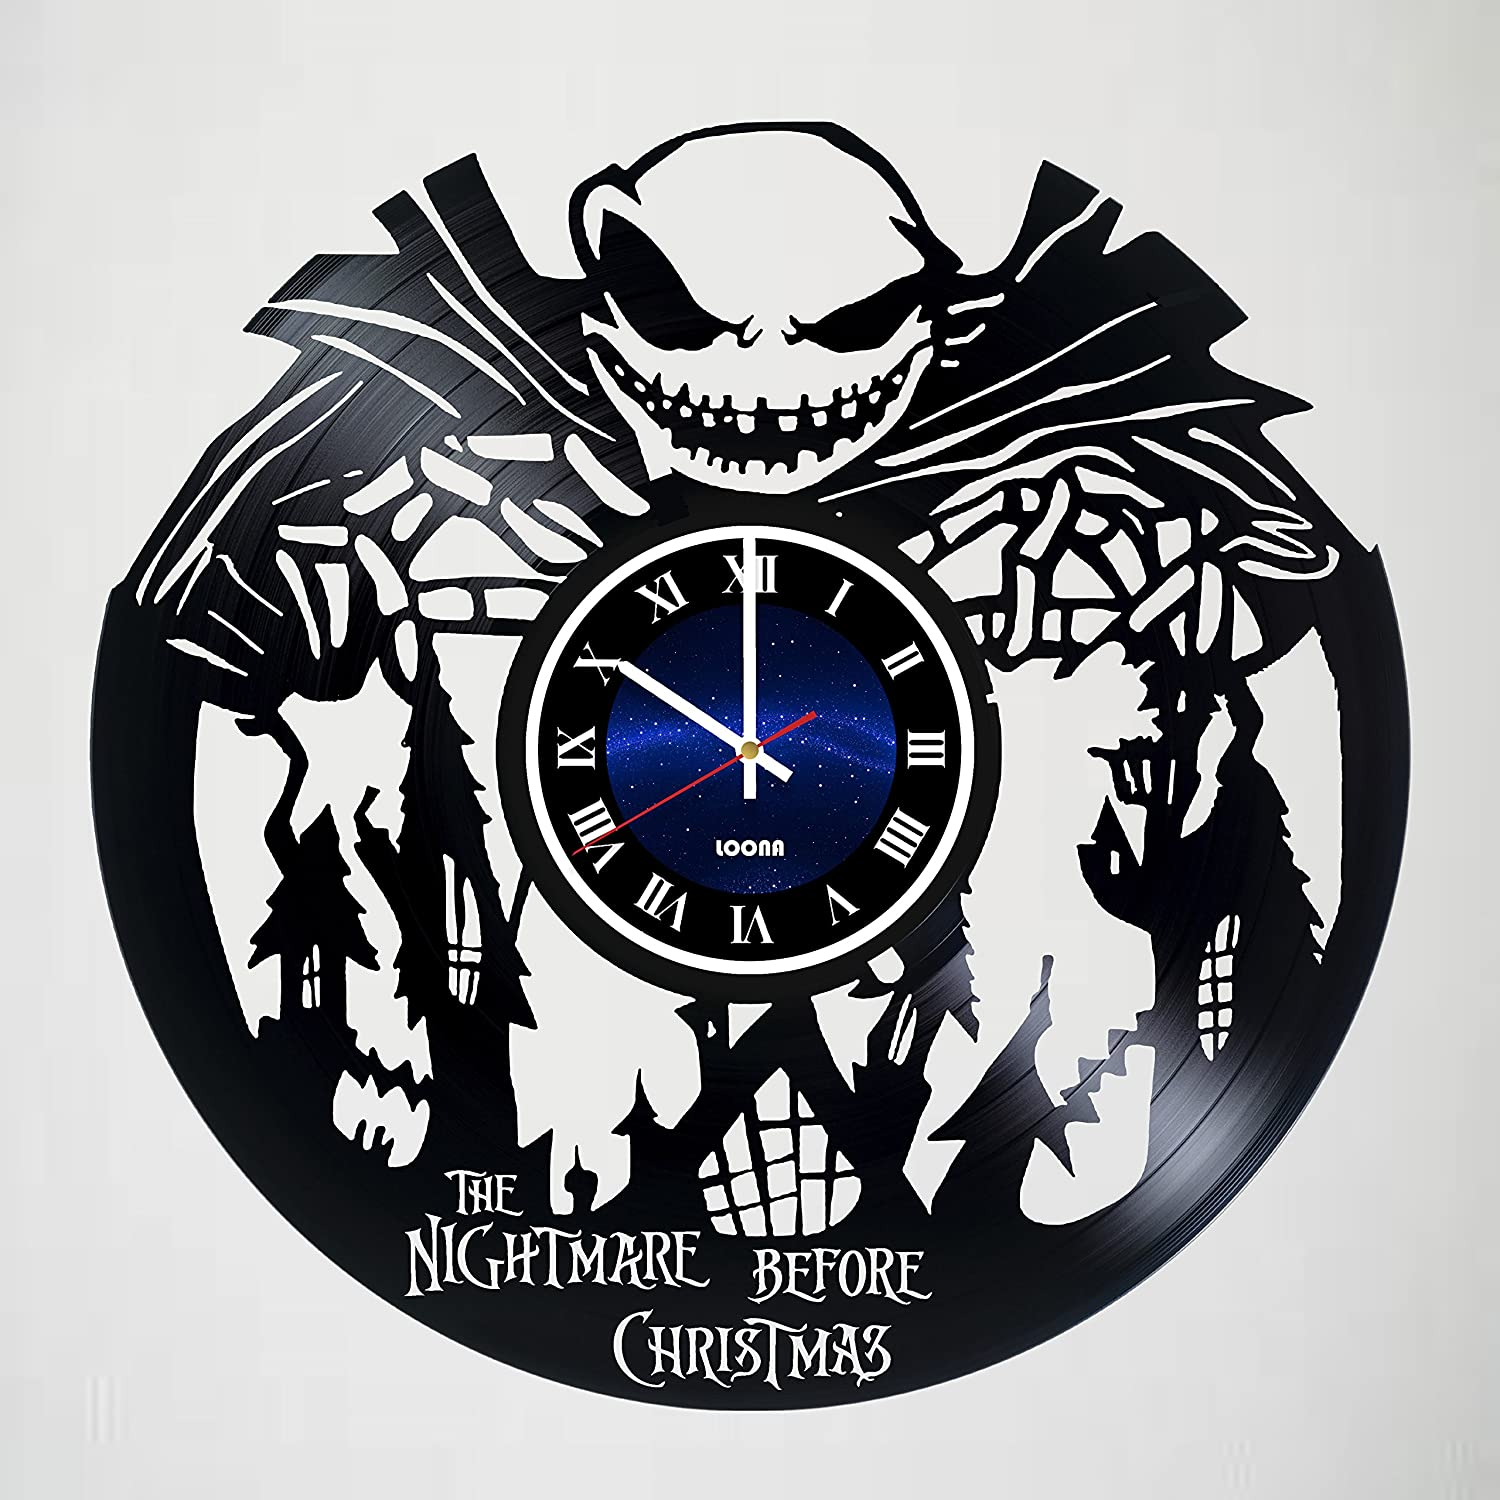 Amazon.com: The Nightmare before Christmas - Vinyl Wall Clock ...